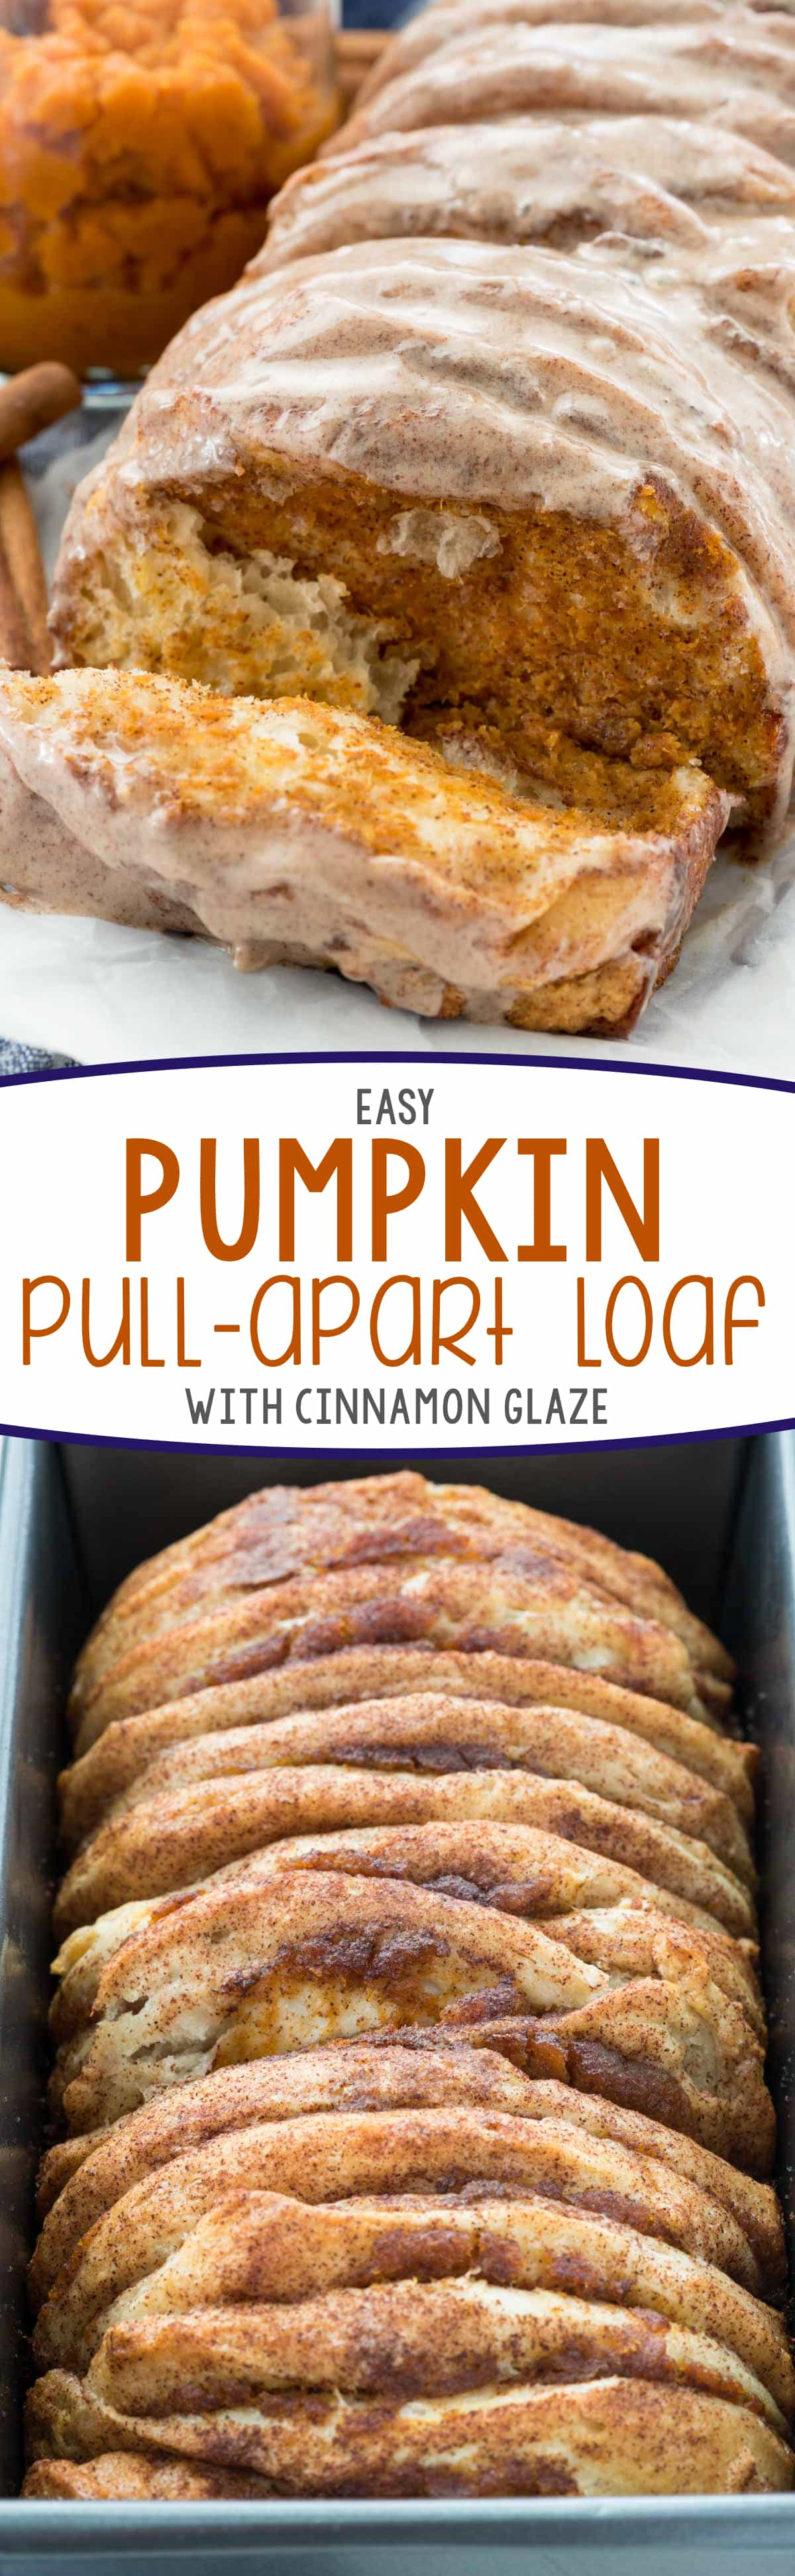 Easy Pumpkin Pull Apart Bread - this is the perfect pumpkin recipe! Refrigerated biscuits filled with pumpkin pie mixture - it's like pumpkin pie for breakfast!